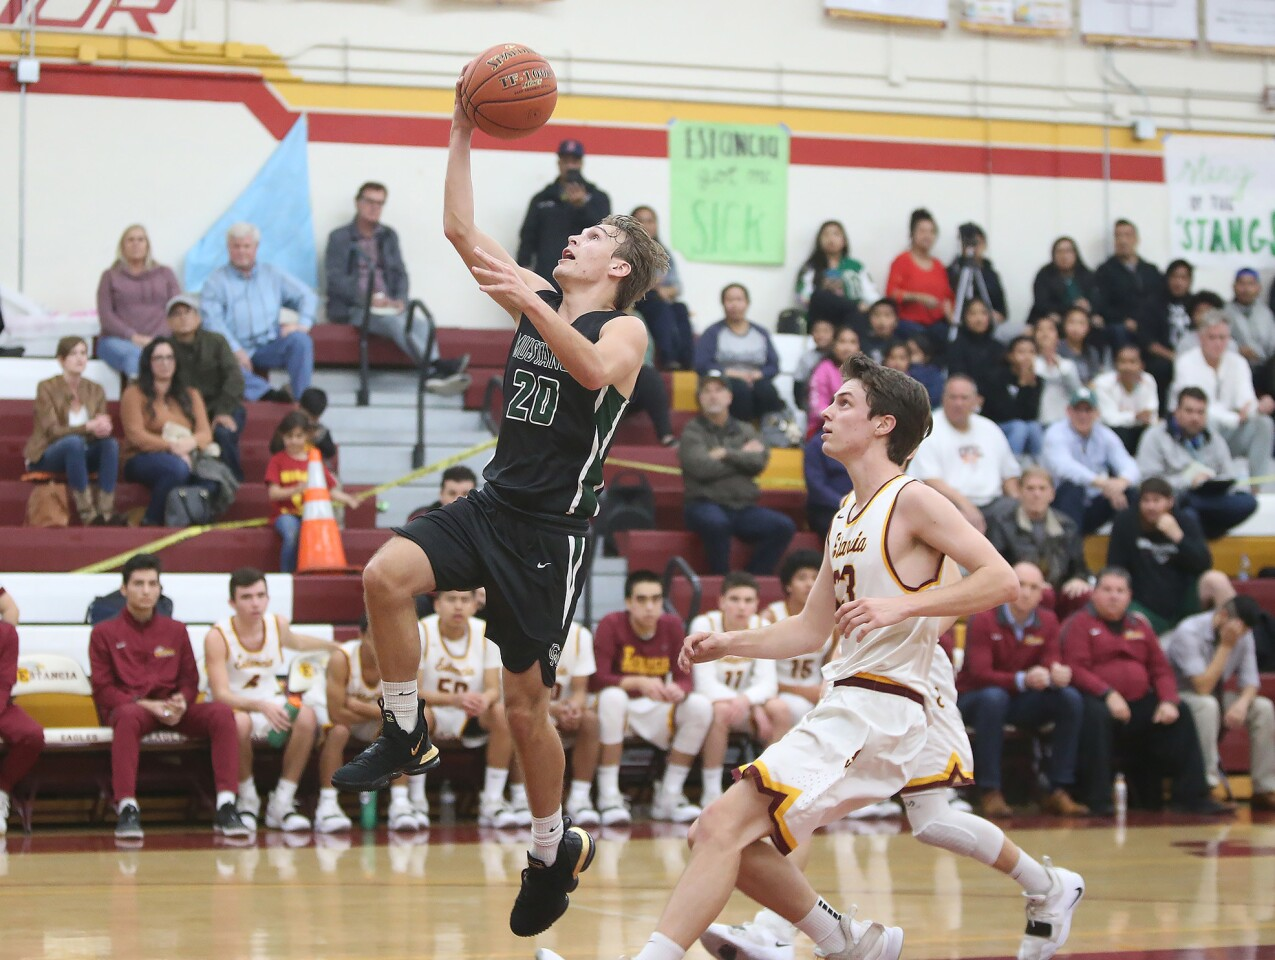 Costa Mesa High's Osman Hefner (20) drives in for a layup as Estancia's Jake Covey watches during an Orange Coast League boys' basketball game on Wednesday.